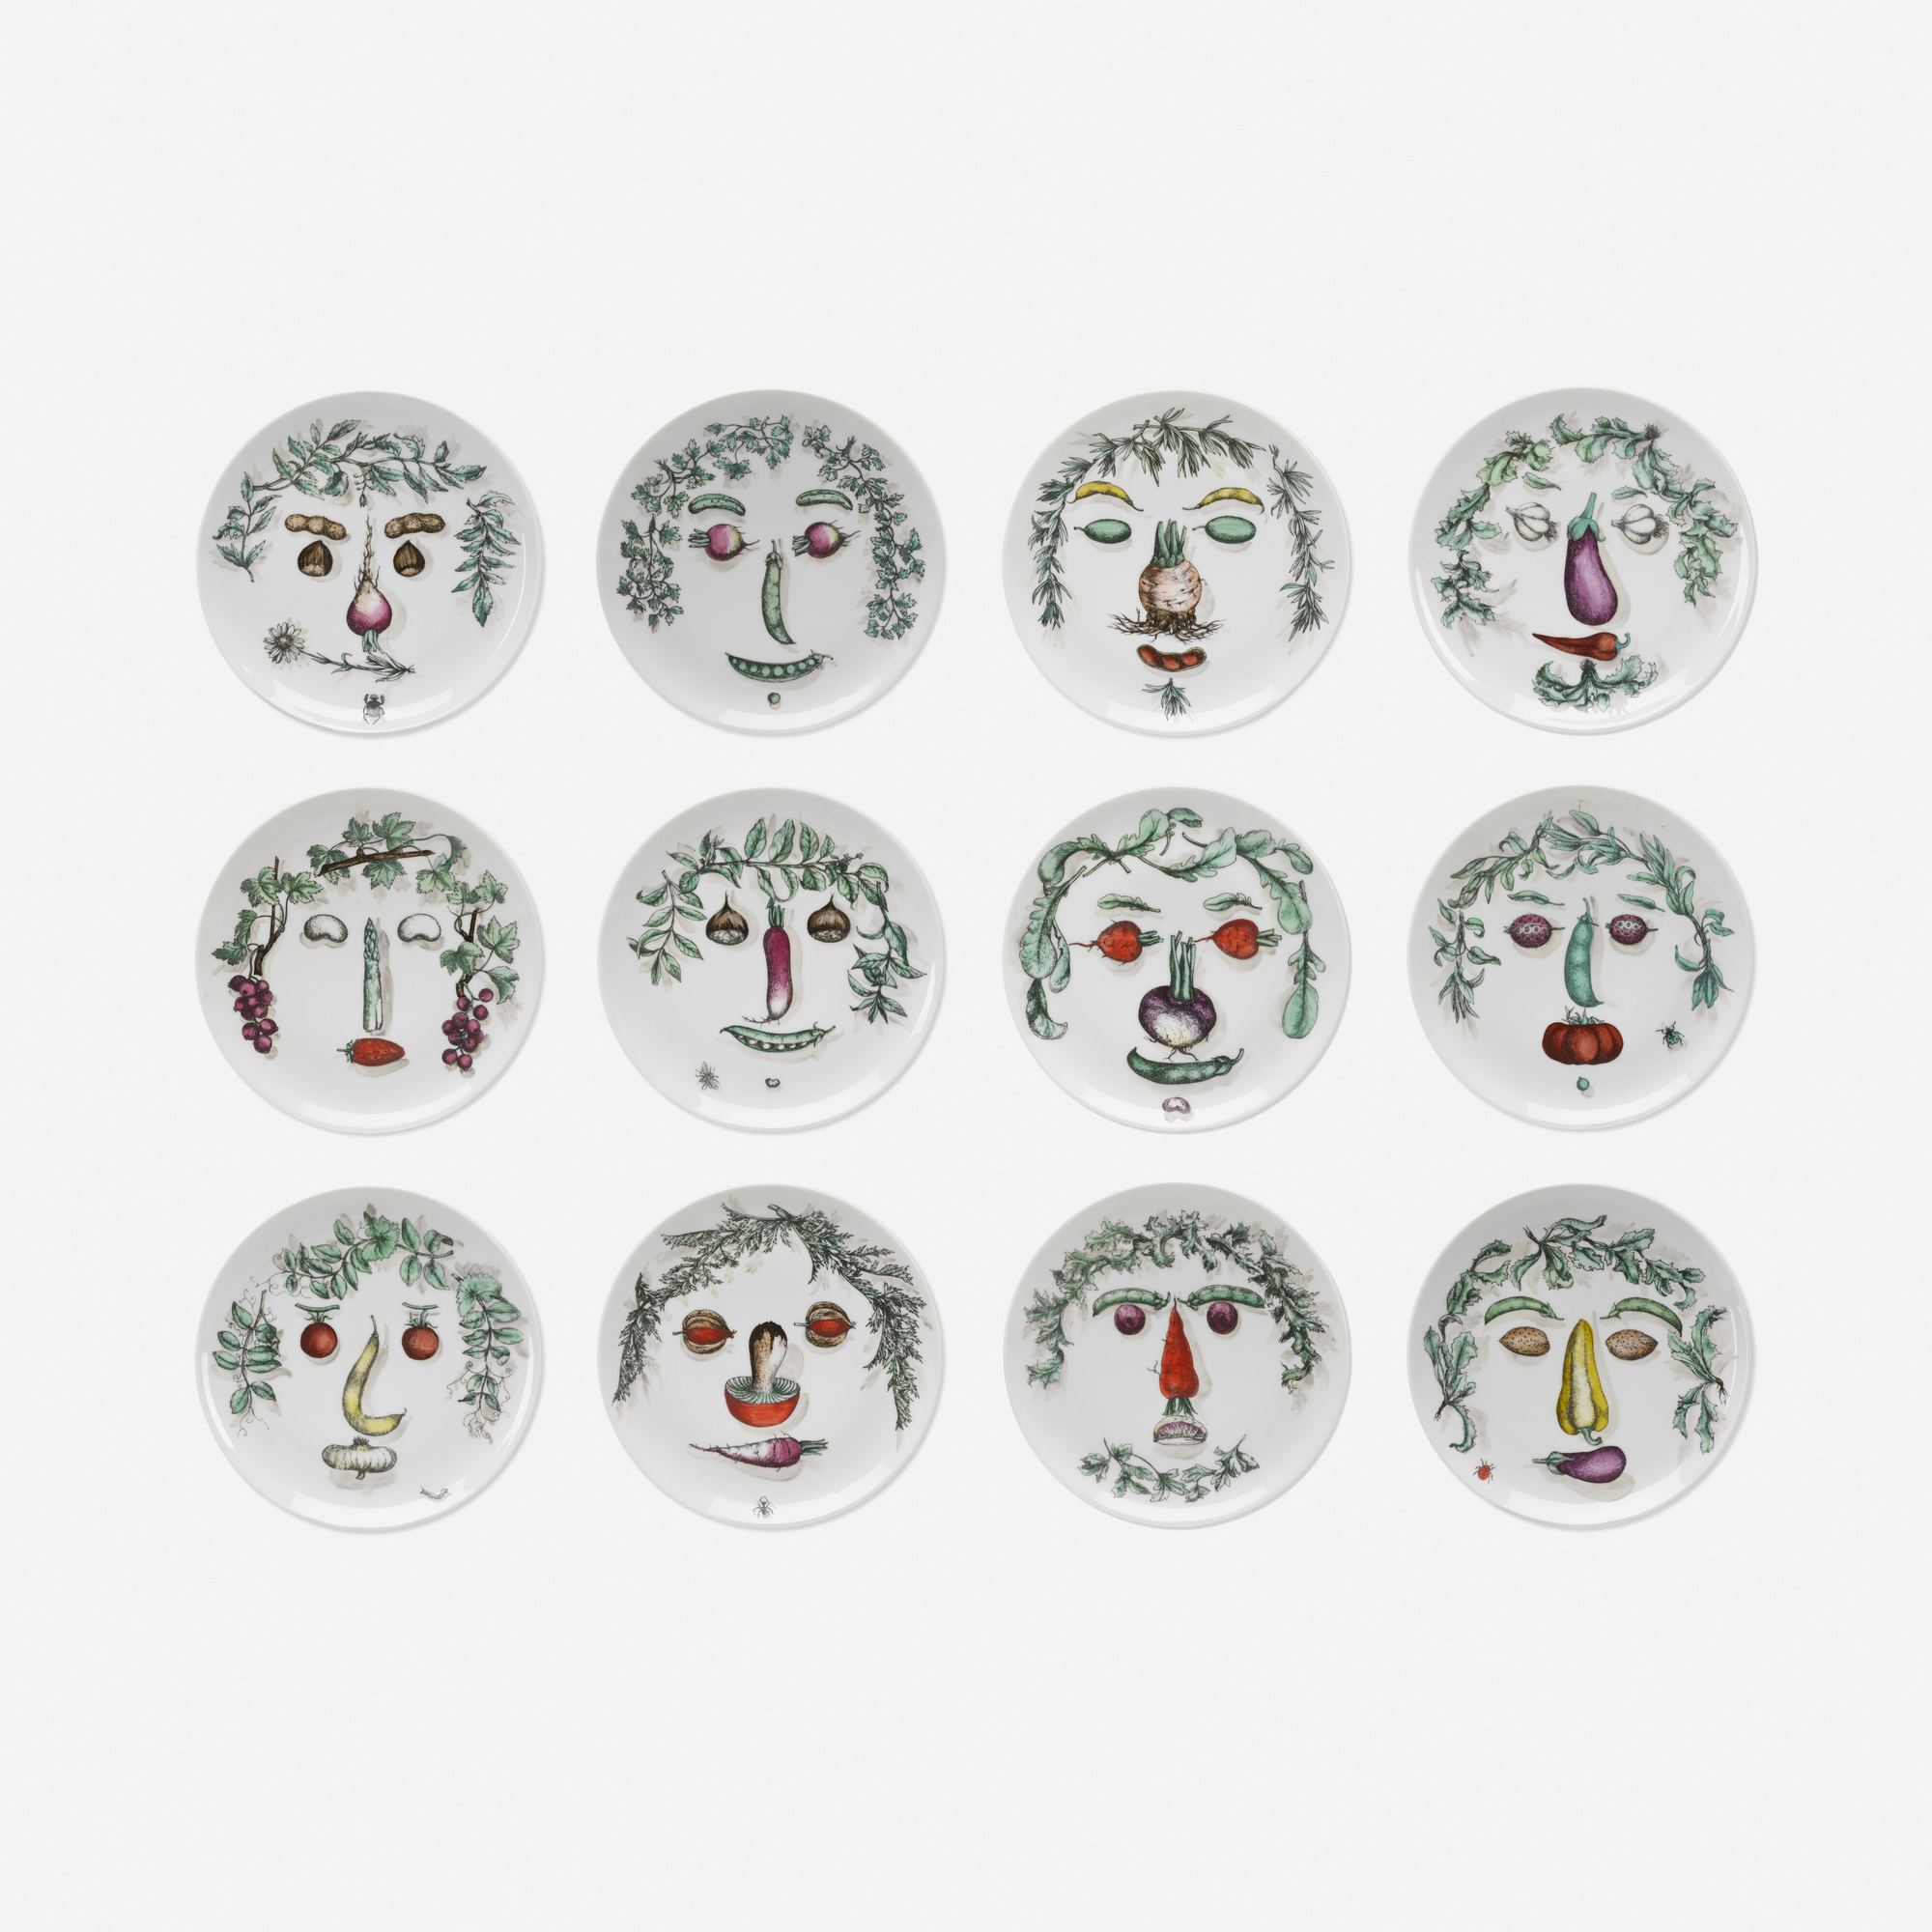 112: Piero Fornasetti / Acrimboldesca plates, set of twelve (1 of 2)